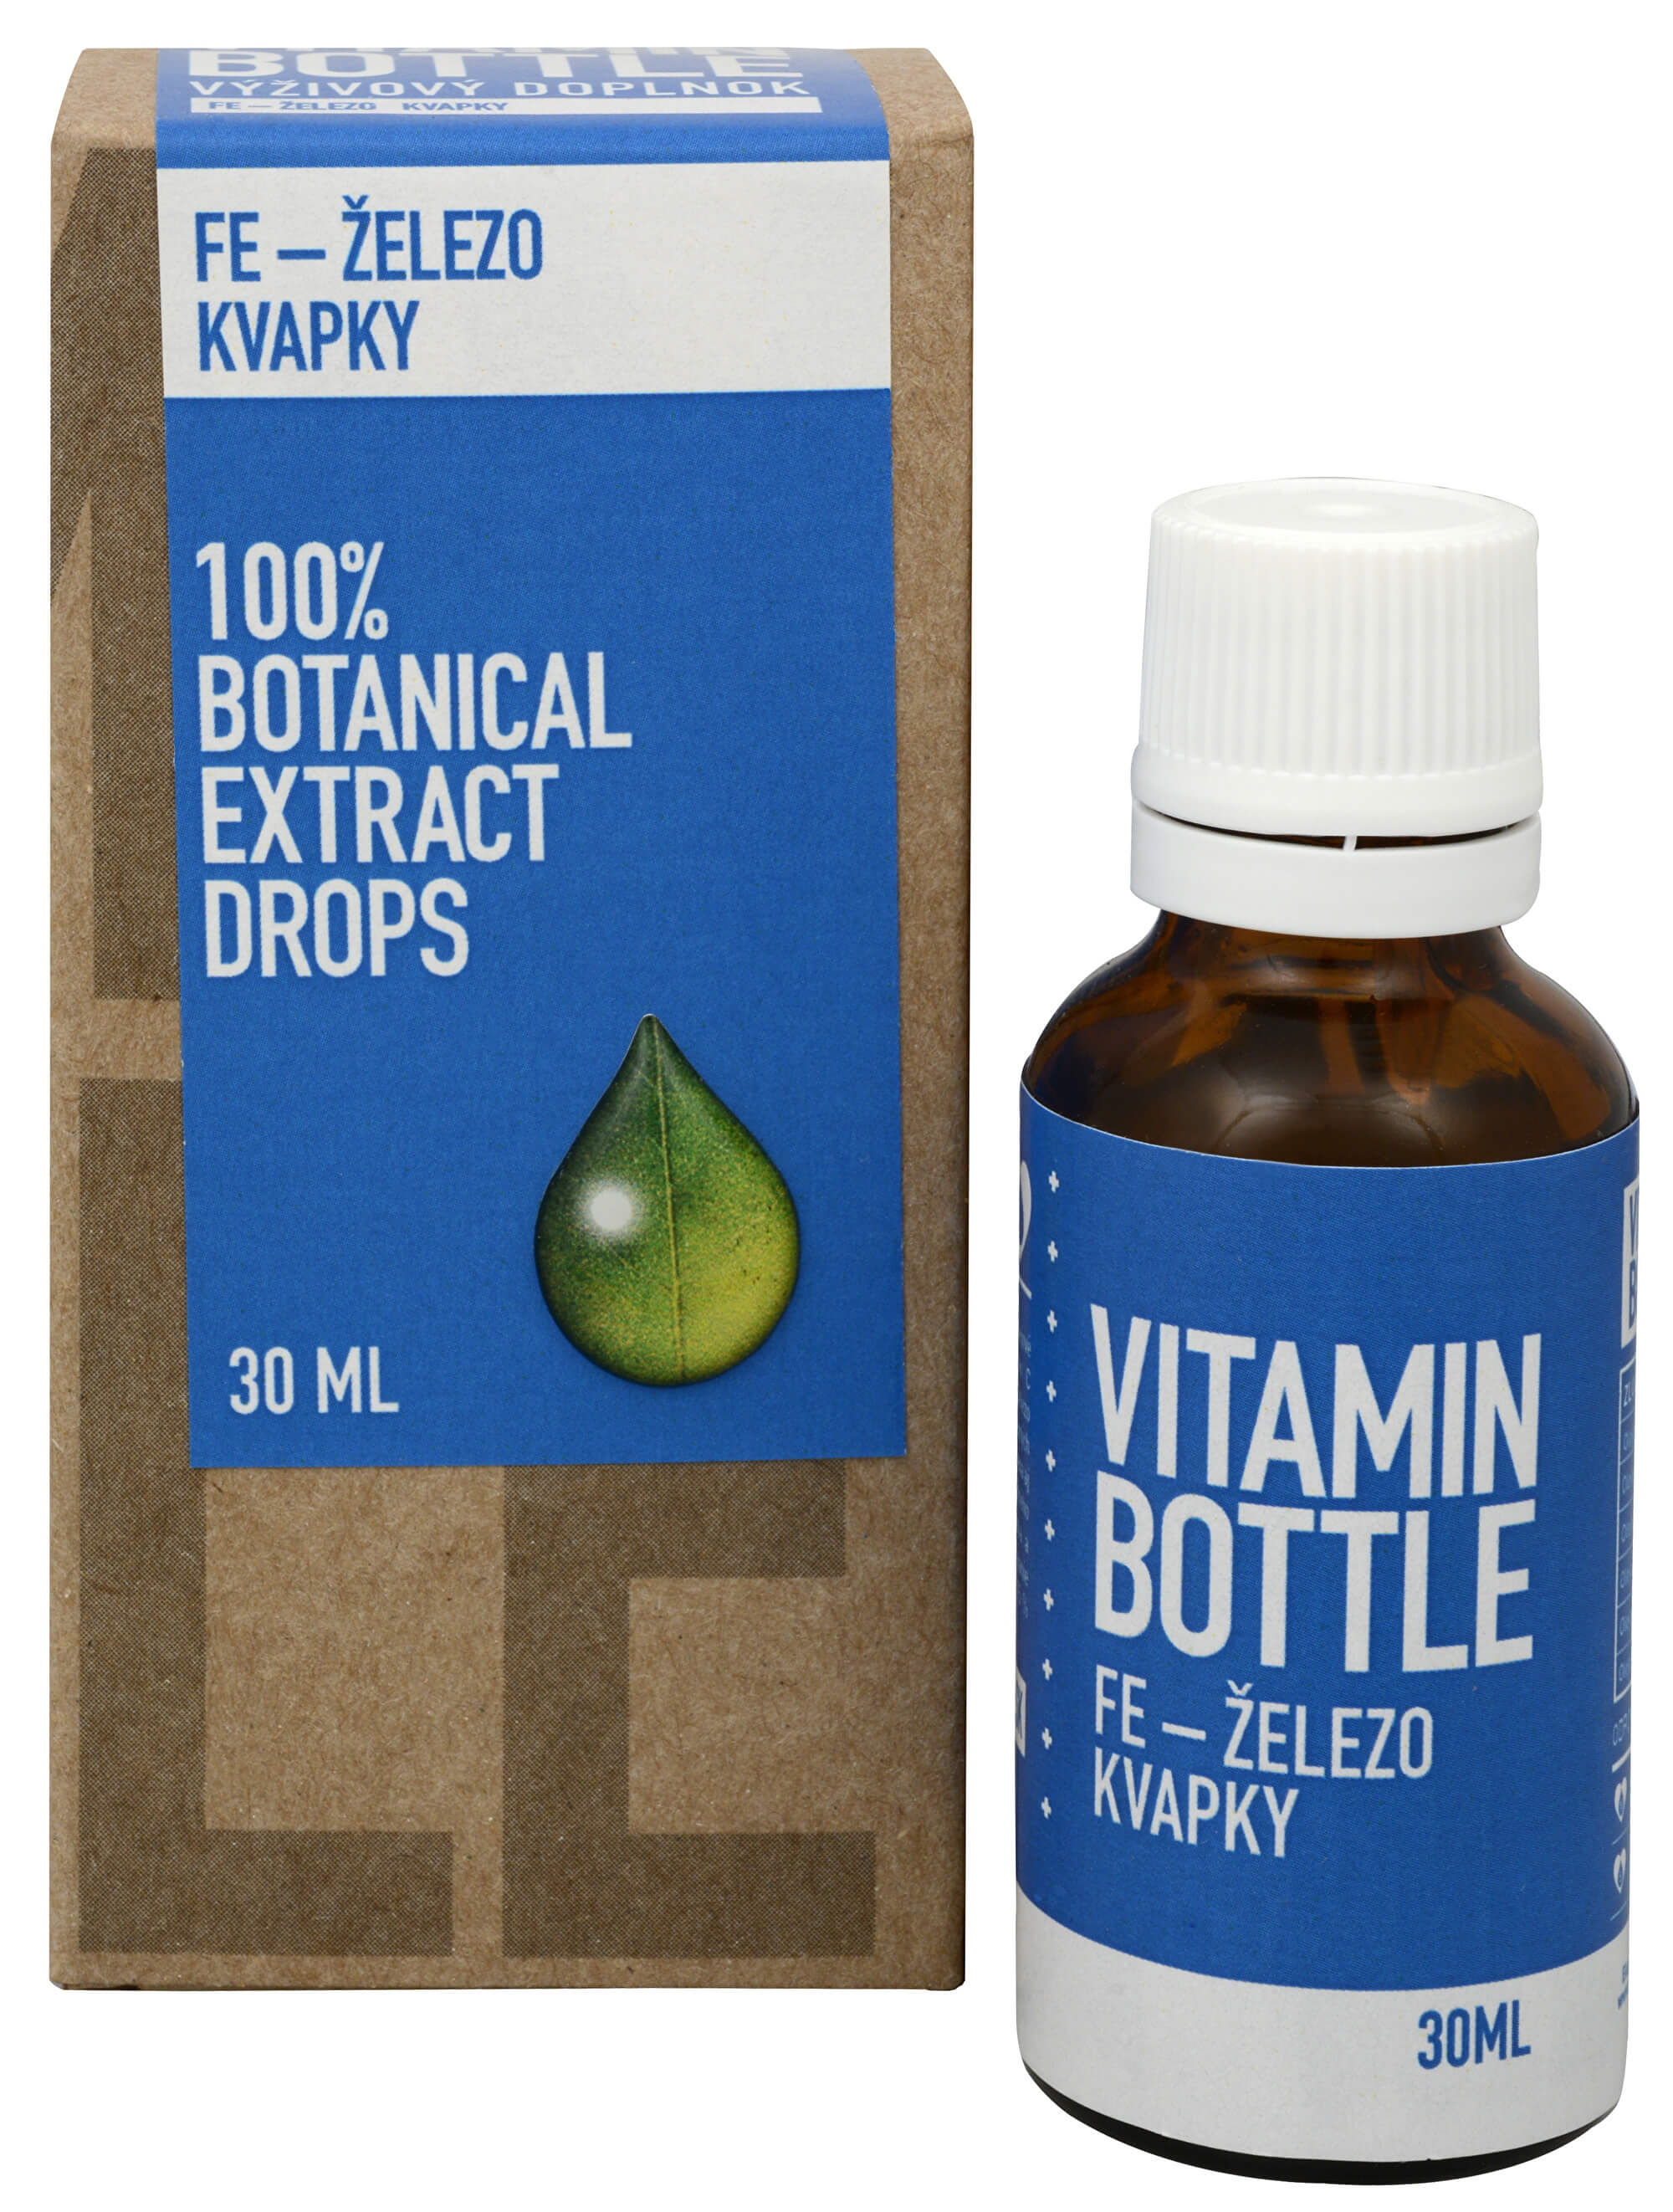 Vitamin Bottle Fe – železo 30 ml